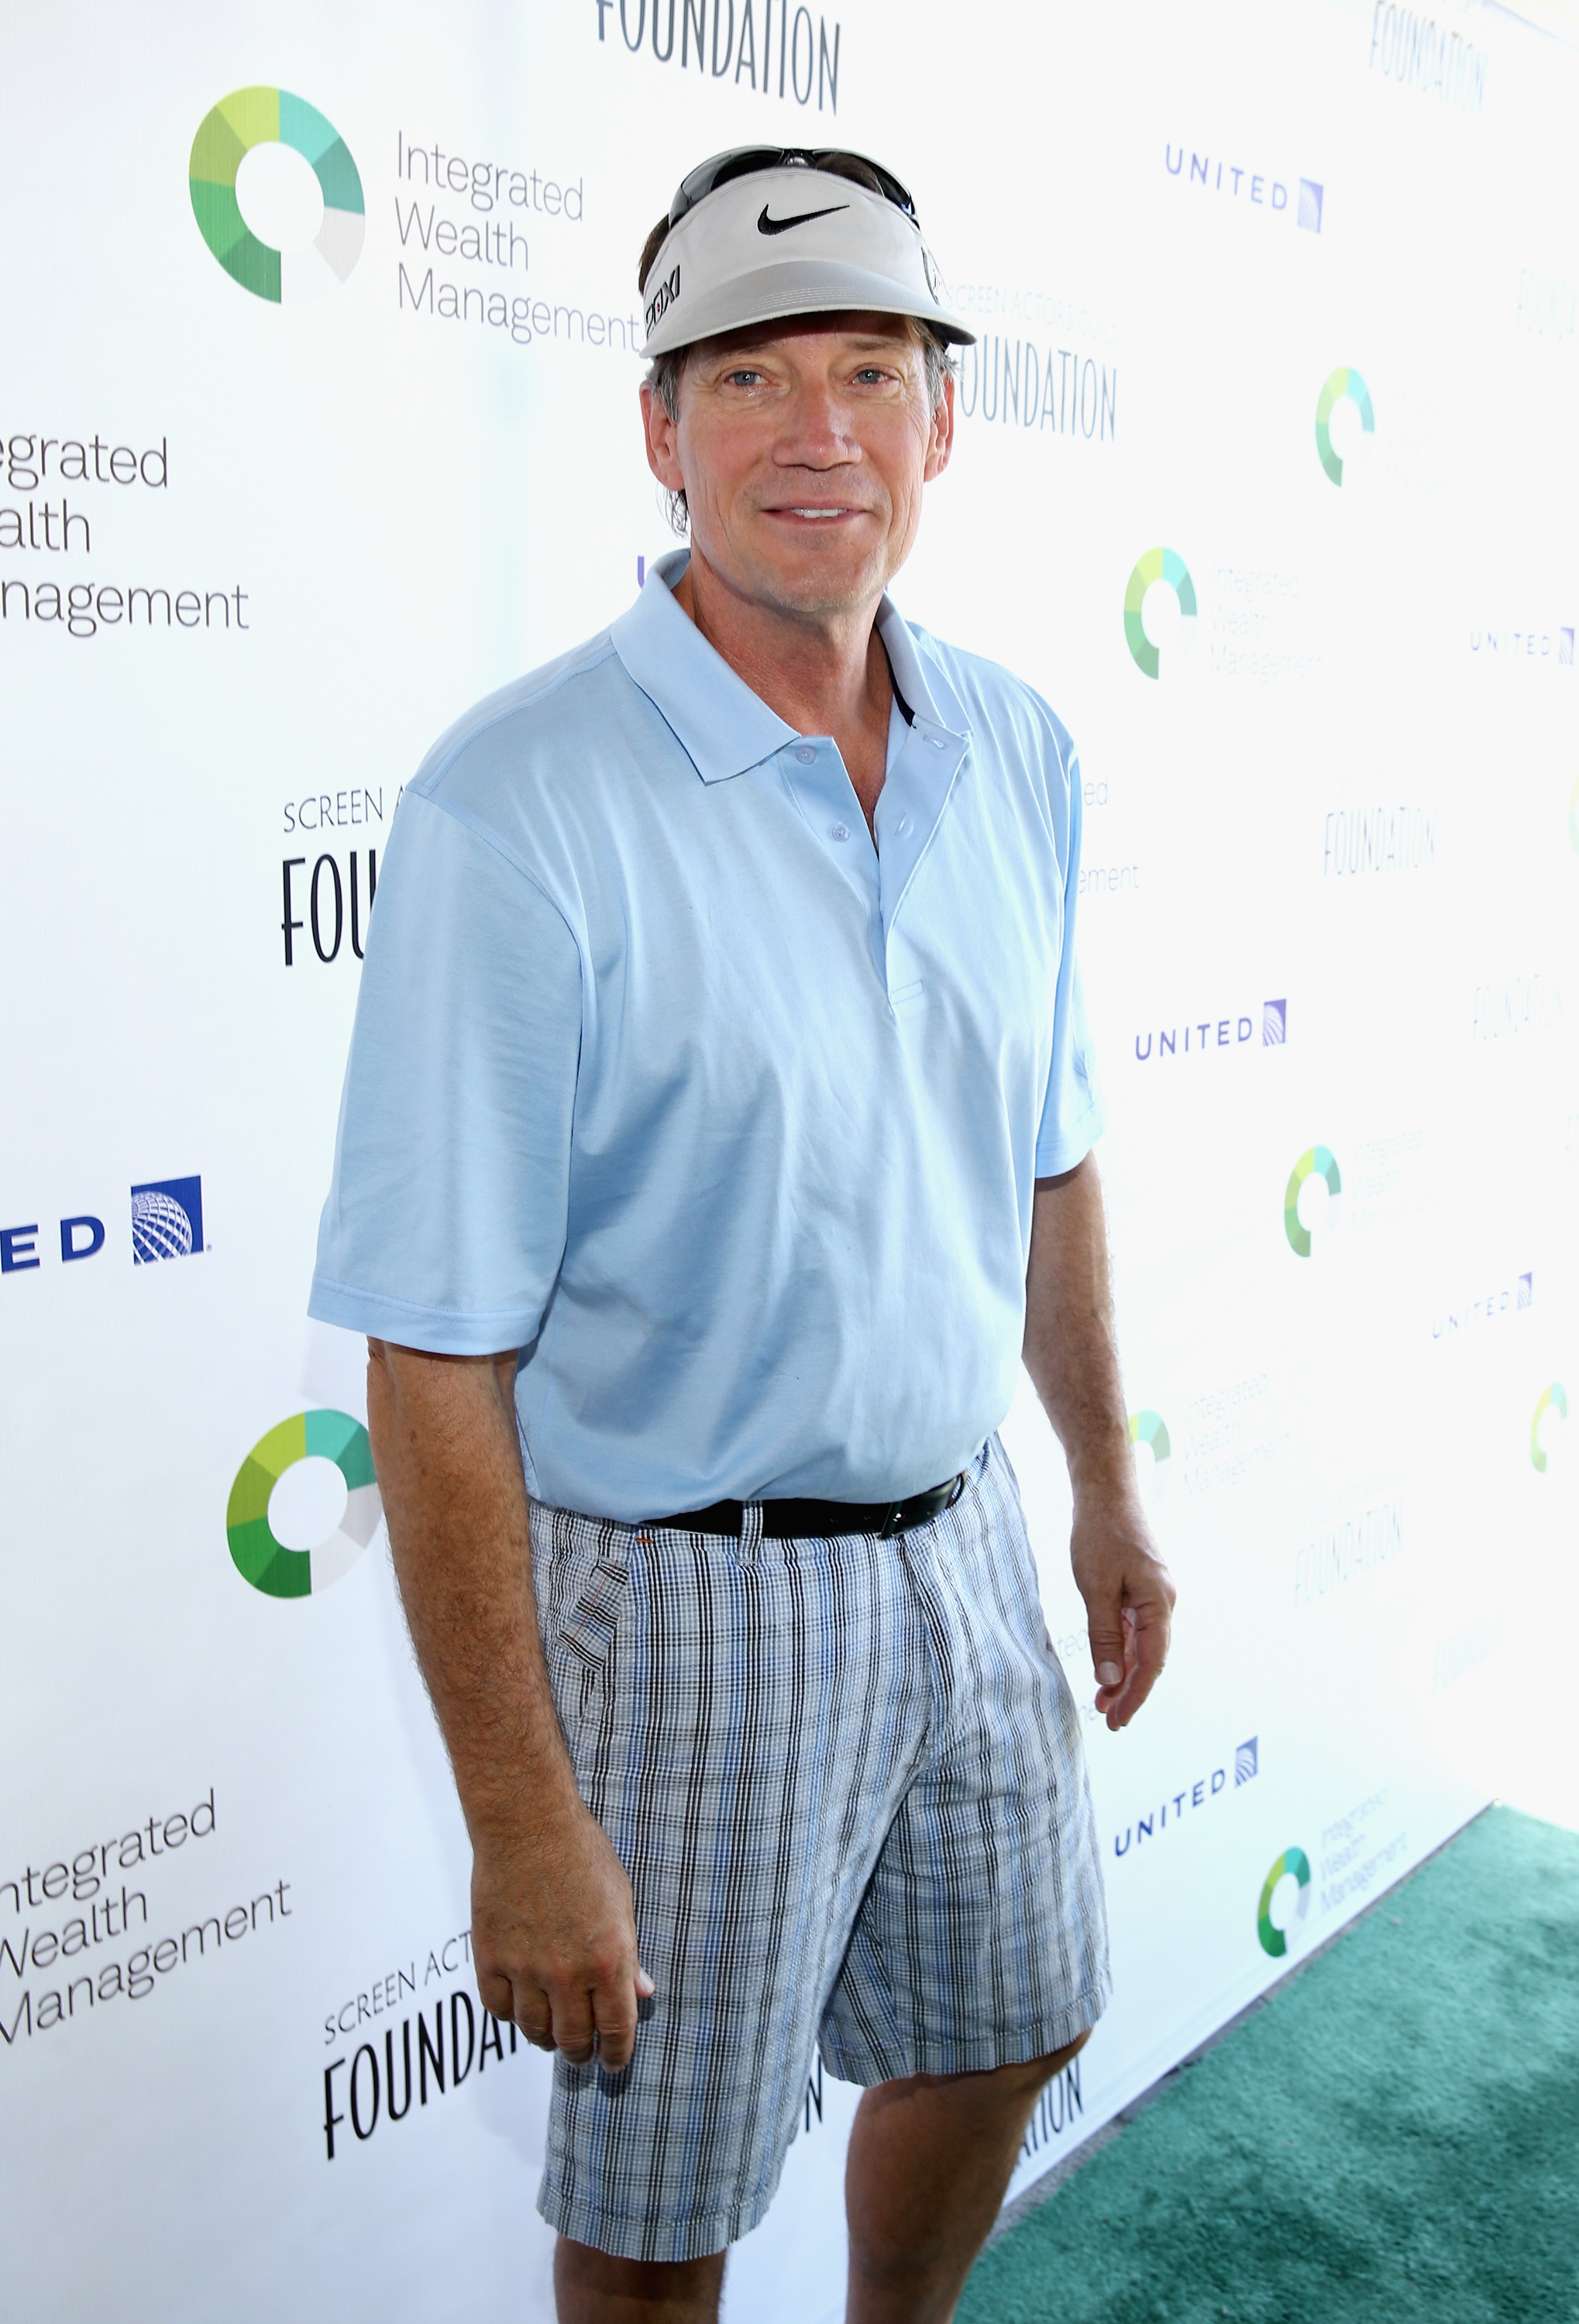 Actor Kevin Sorbo attends The Screen Actors Guild Foundation's 6th Annual Los Angeles Golf Classic on June 8, 2015 in Burbank, California.  (Photo by Mark Davis/Getty Images for The Screen Actors Guild Foundation)